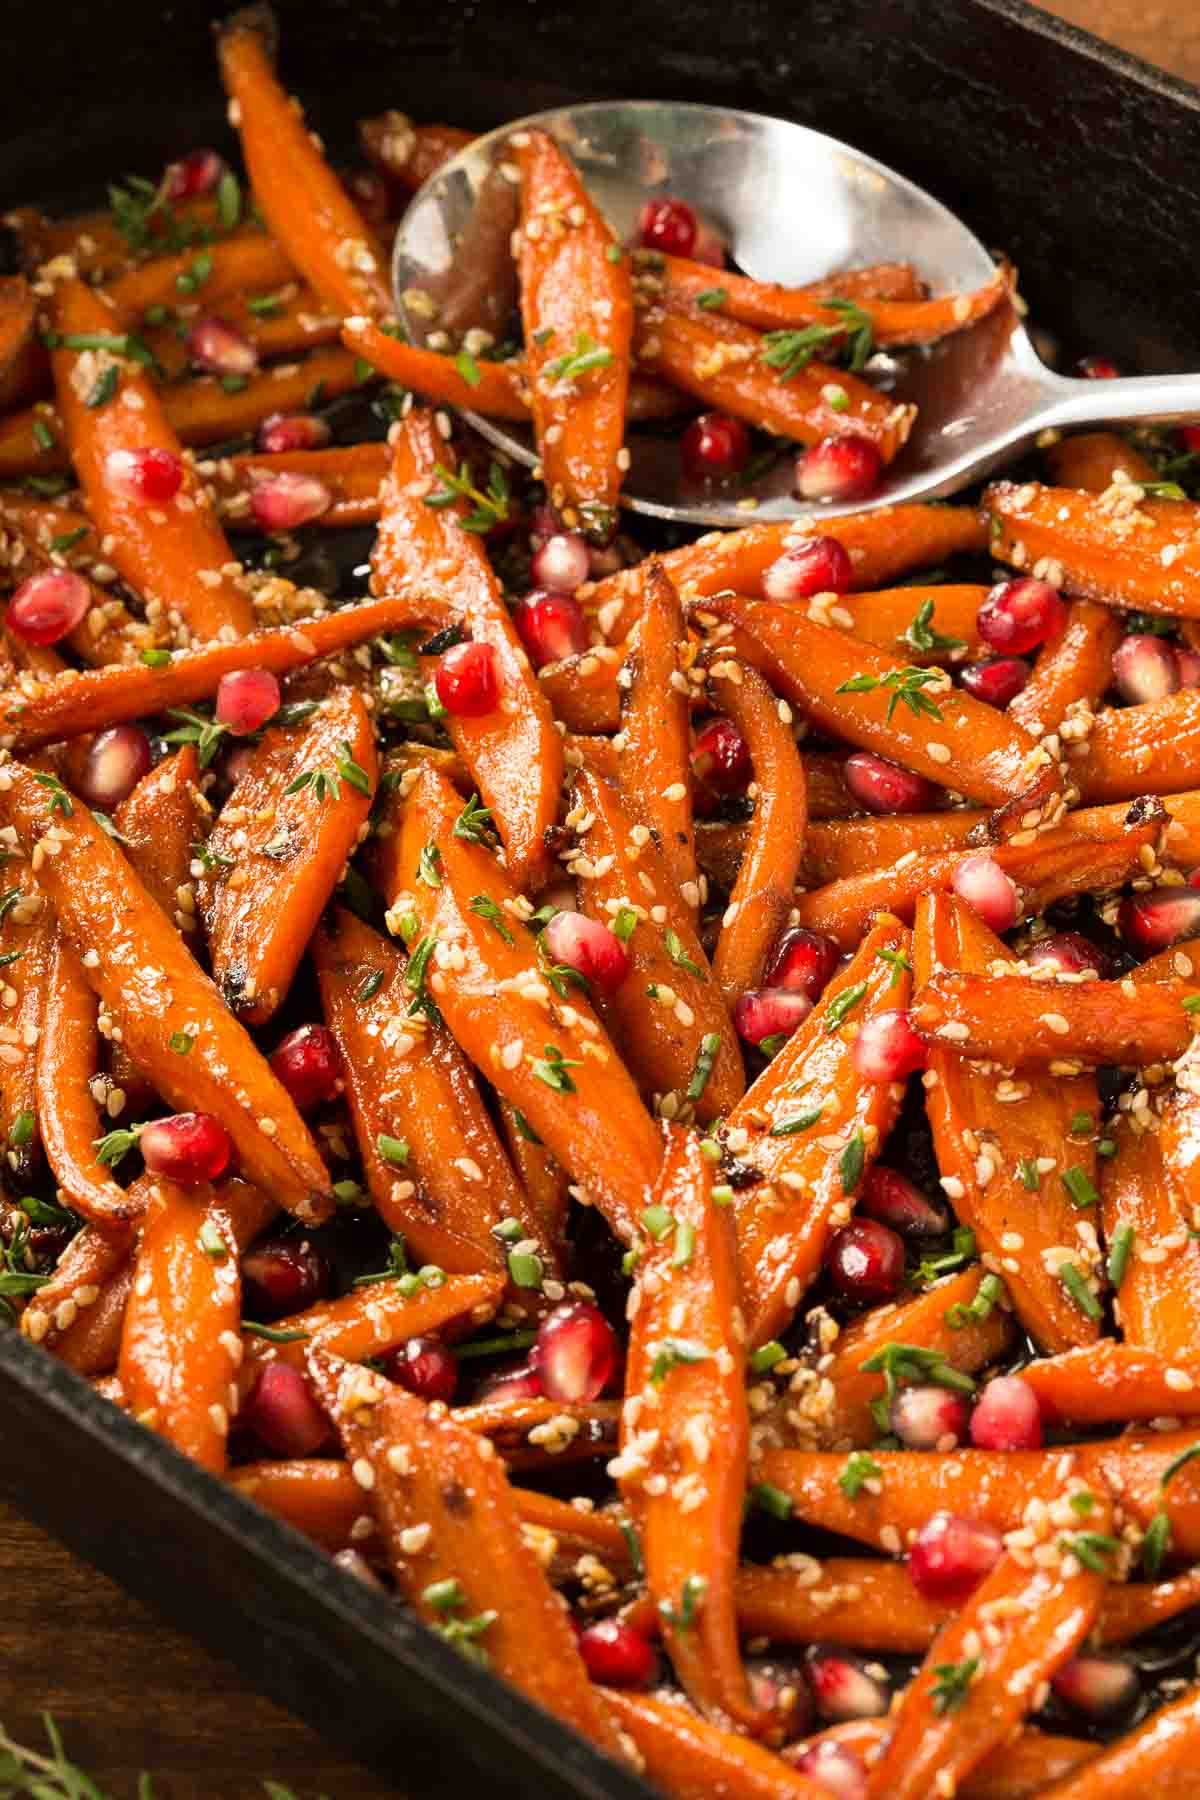 Honey maple roasted carrots with pomegranate